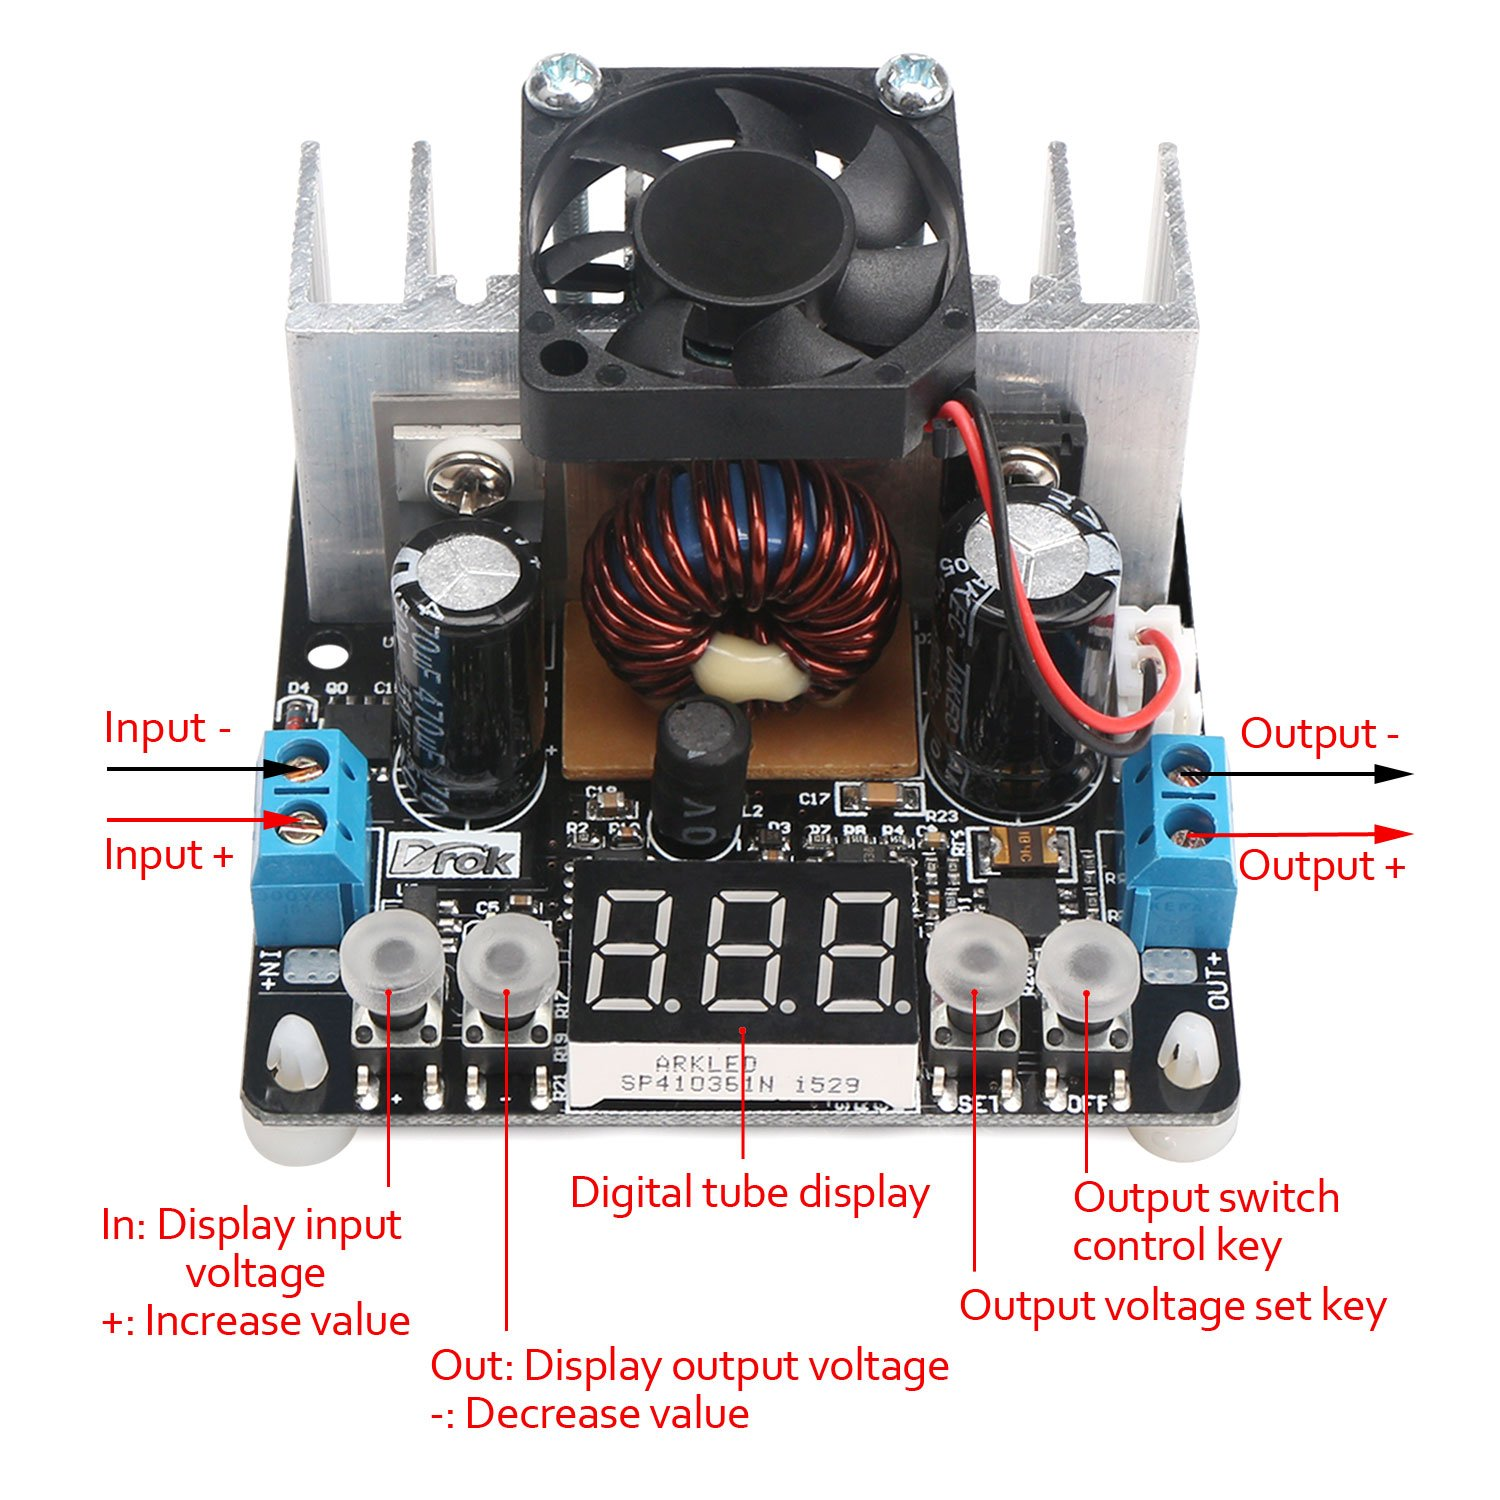 Drok Dc 12v 24v Nc Step Down Voltage Regulator 8a Simple Reversepolarityprotection Circuit Has No Drop Figure Numerical Control Buck Converter With Heatsink Fan 6 40v To 0 38v Adjustable Digital Voltmeter